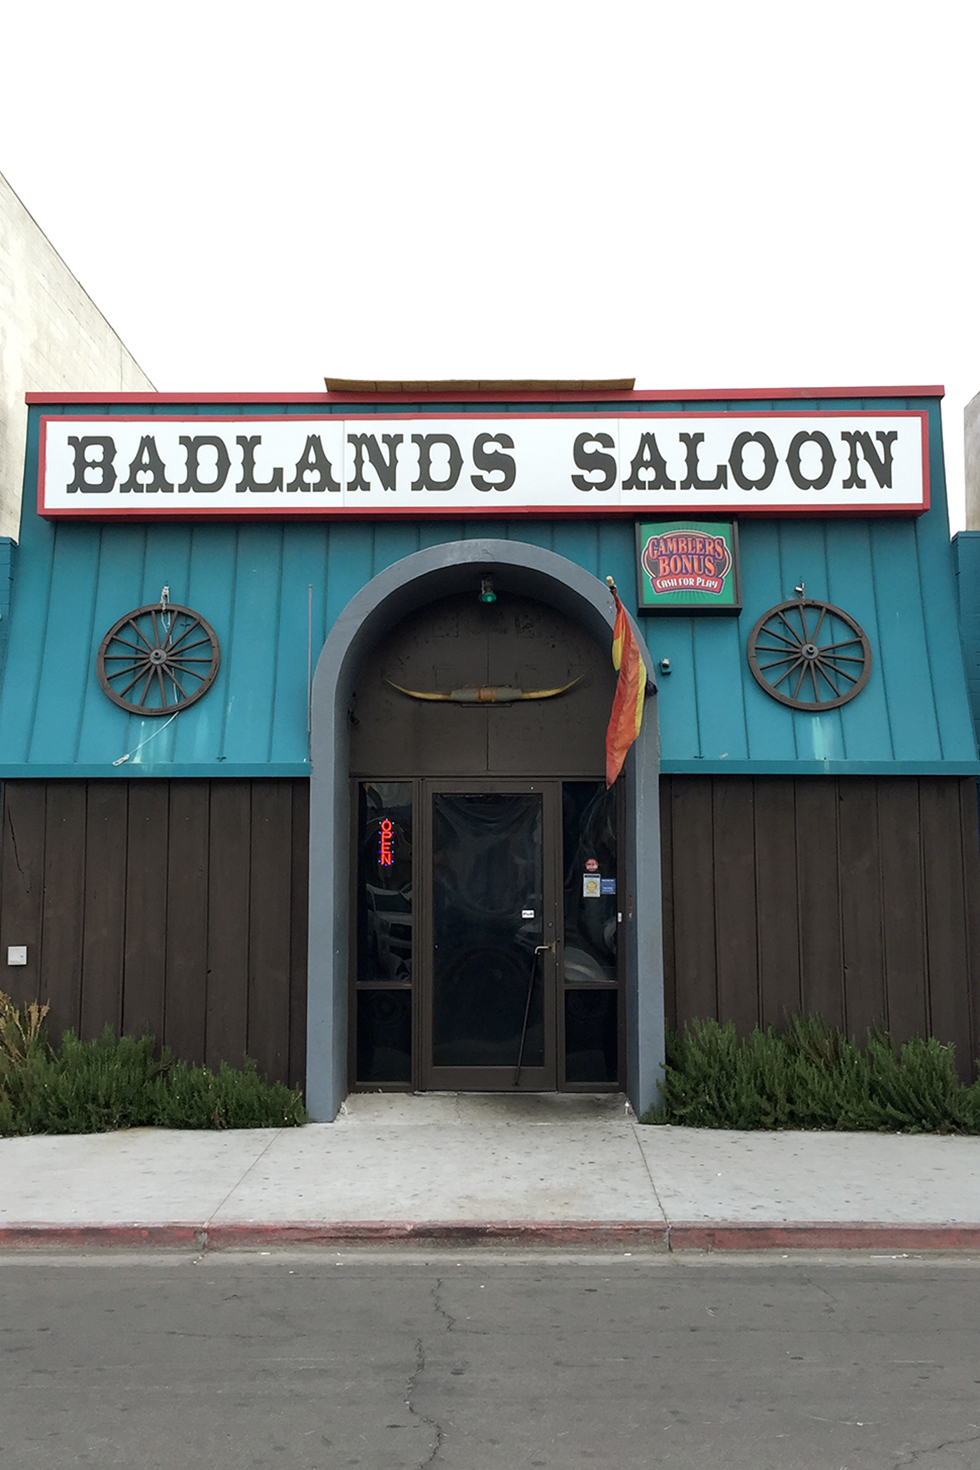 Badlands Saloon | Las Vegas, Nevada